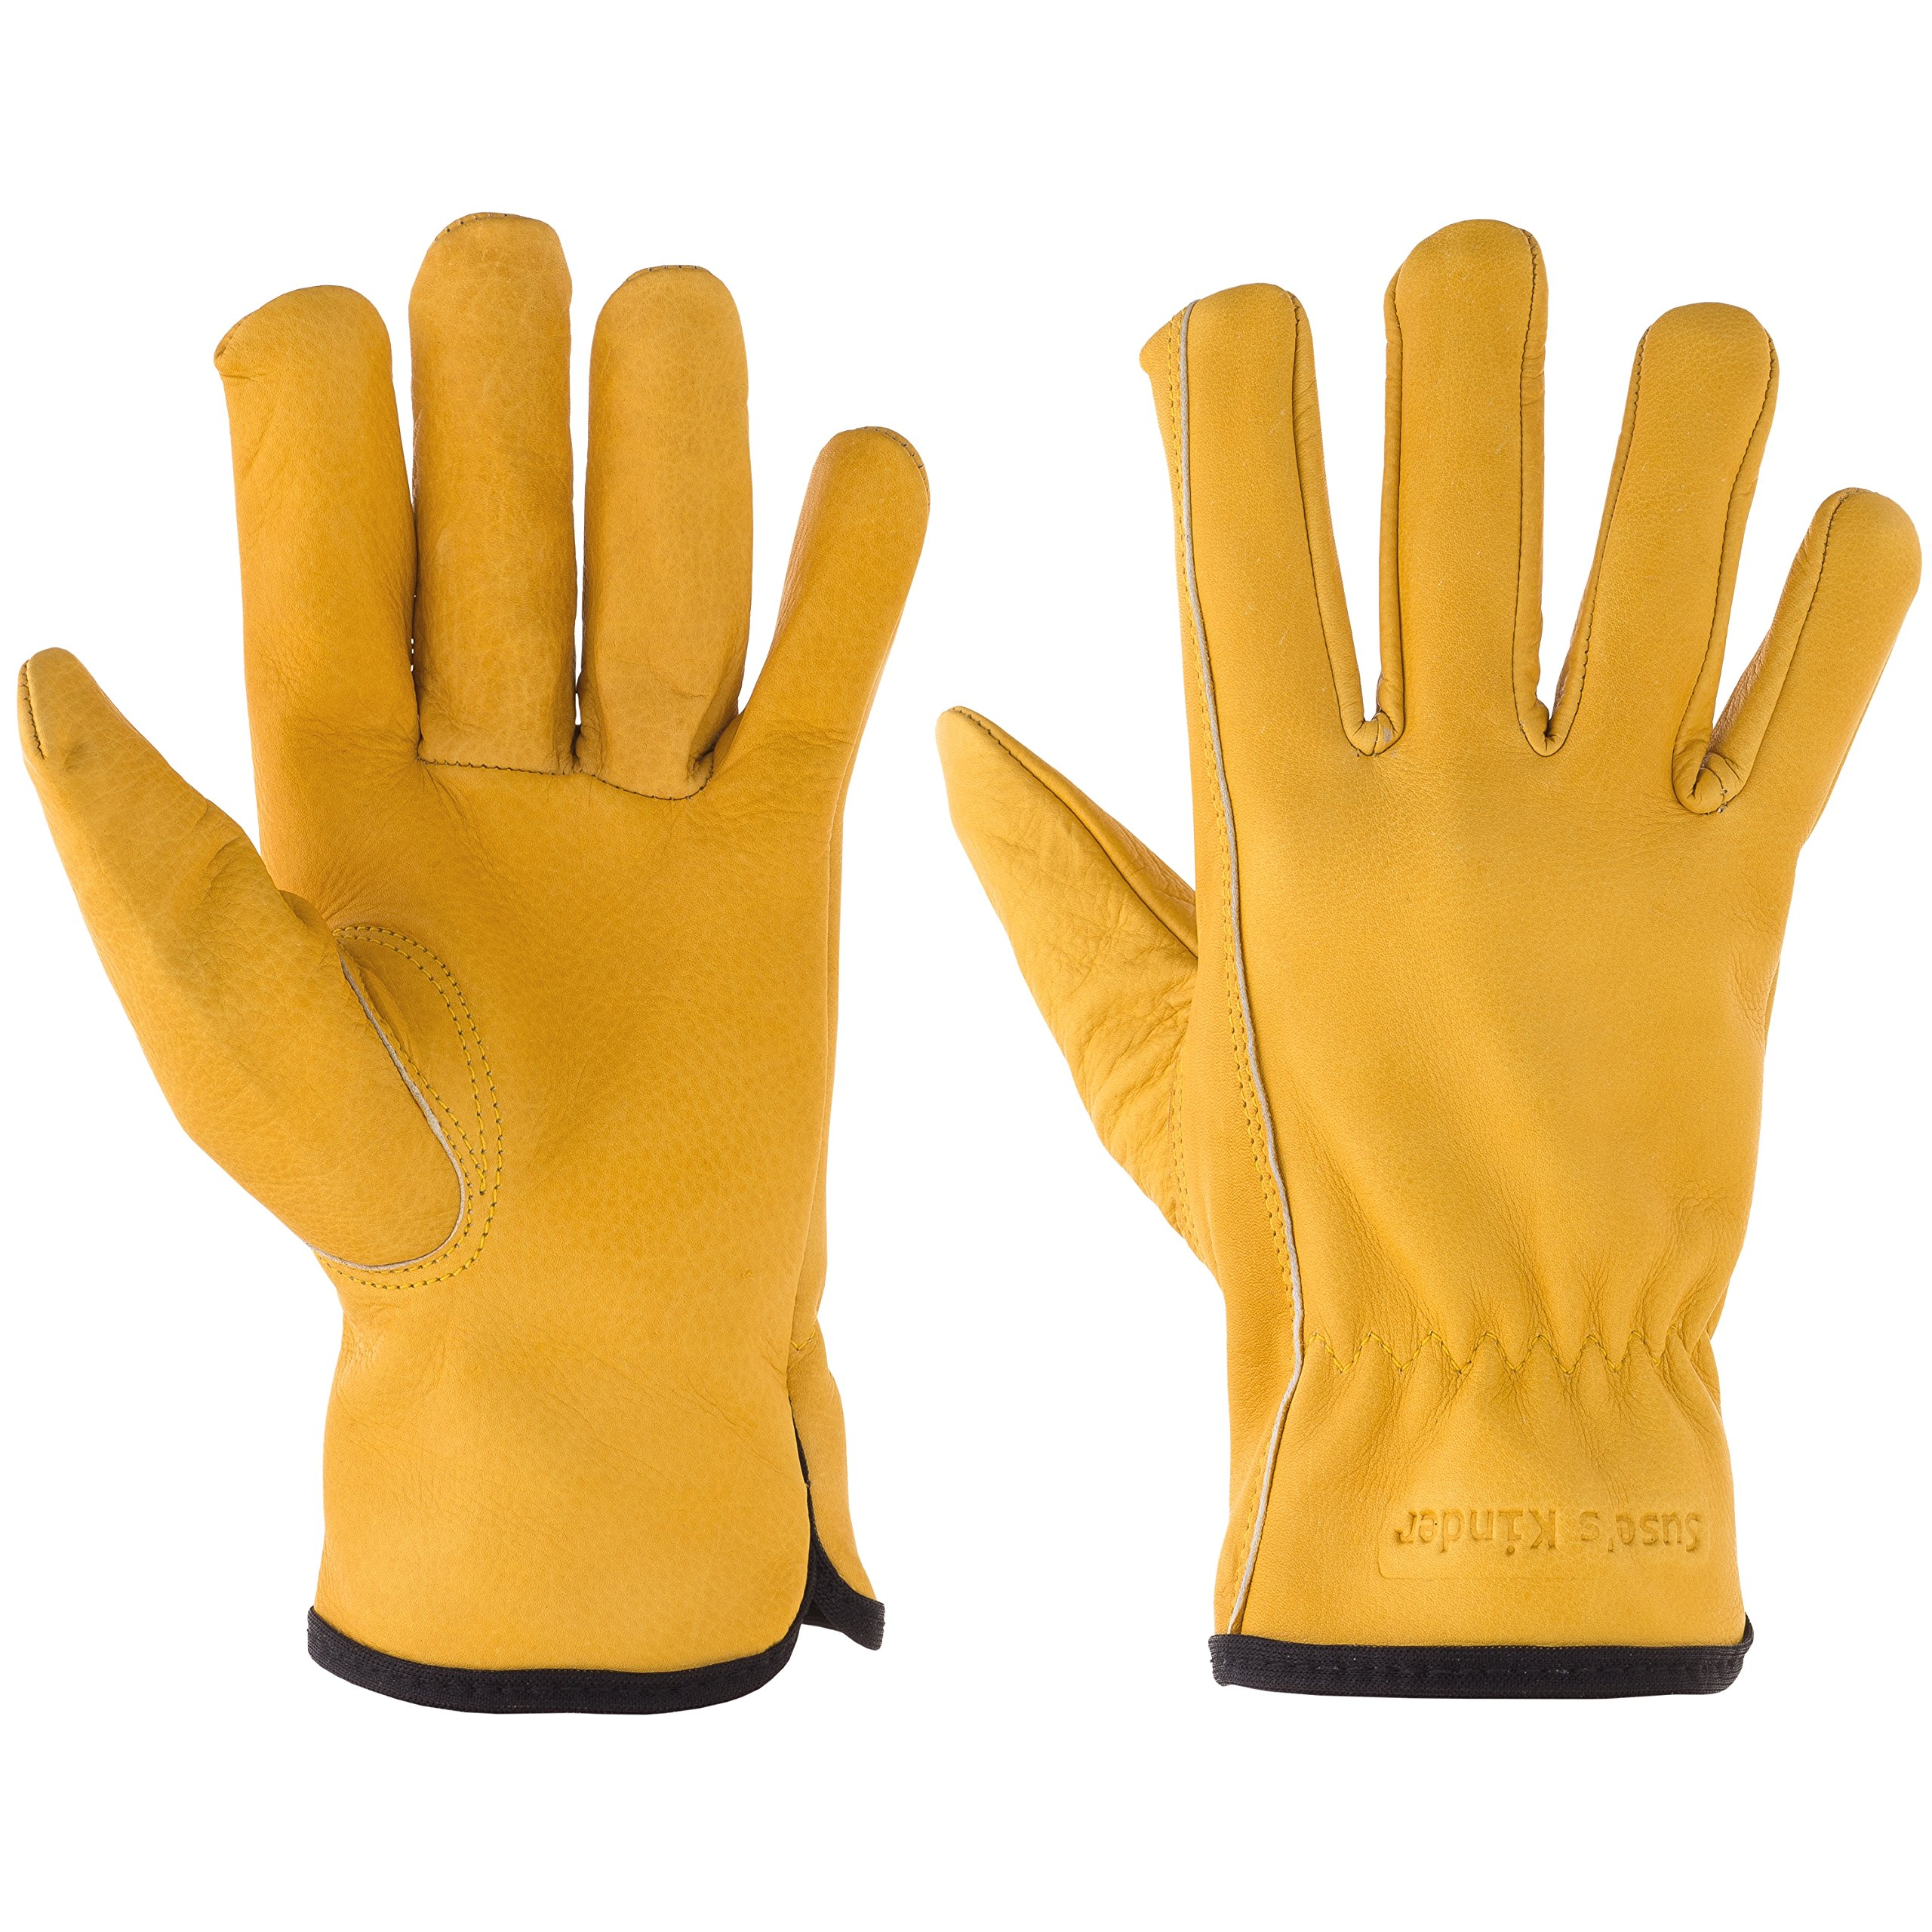 Kids Work Gloves, Garden Gloves for Children, Top Grain Leather, Play, Chore Size (Small Ages 3-5)